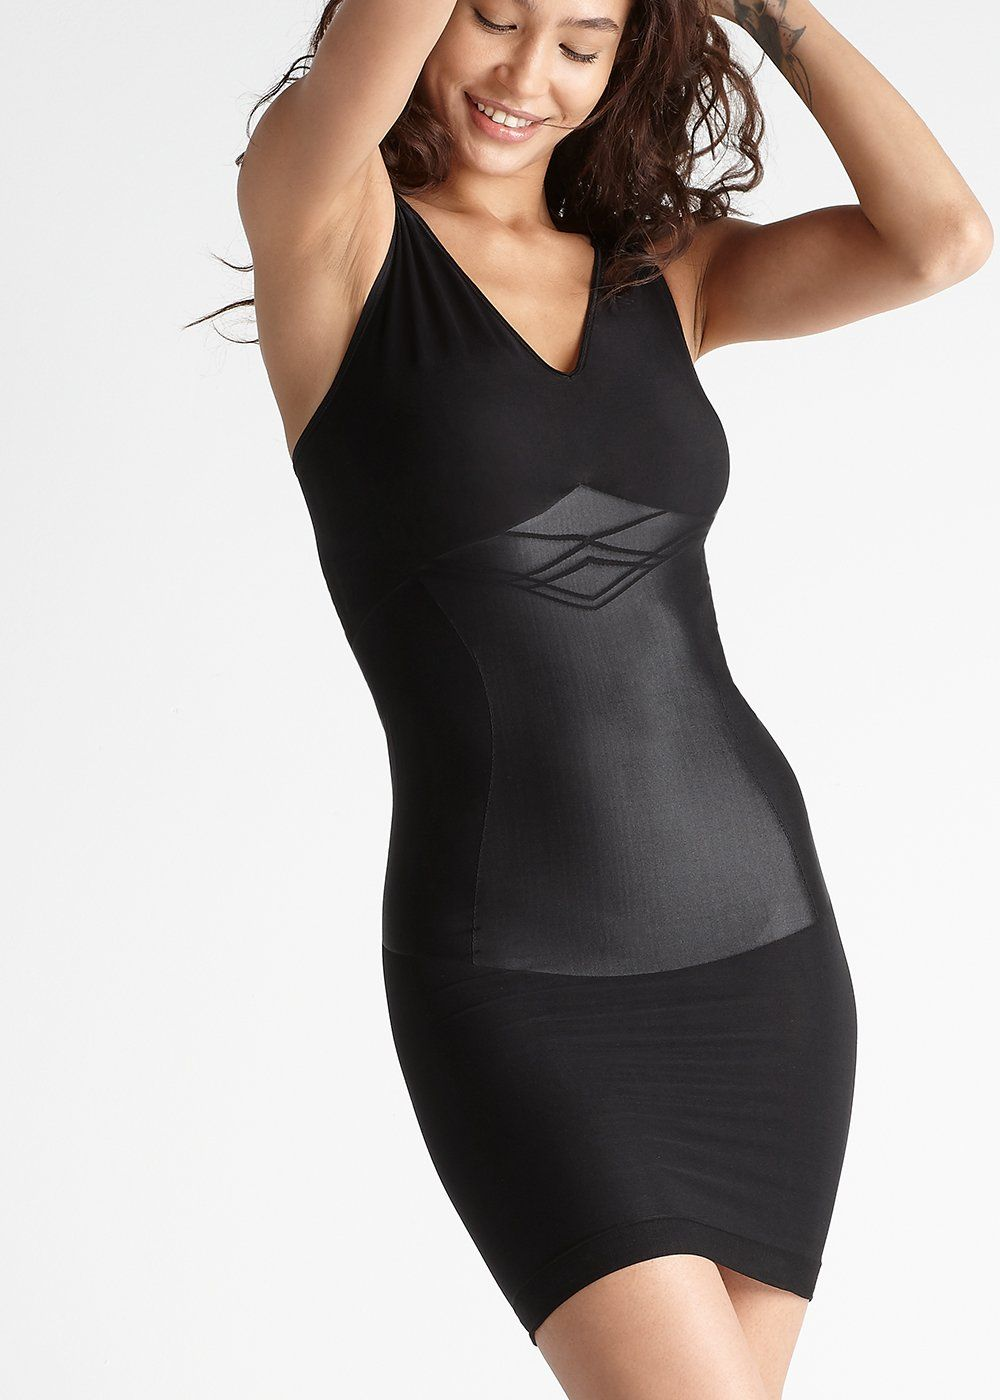 36+ Seamless spanx for wedding dress ideas in 2021